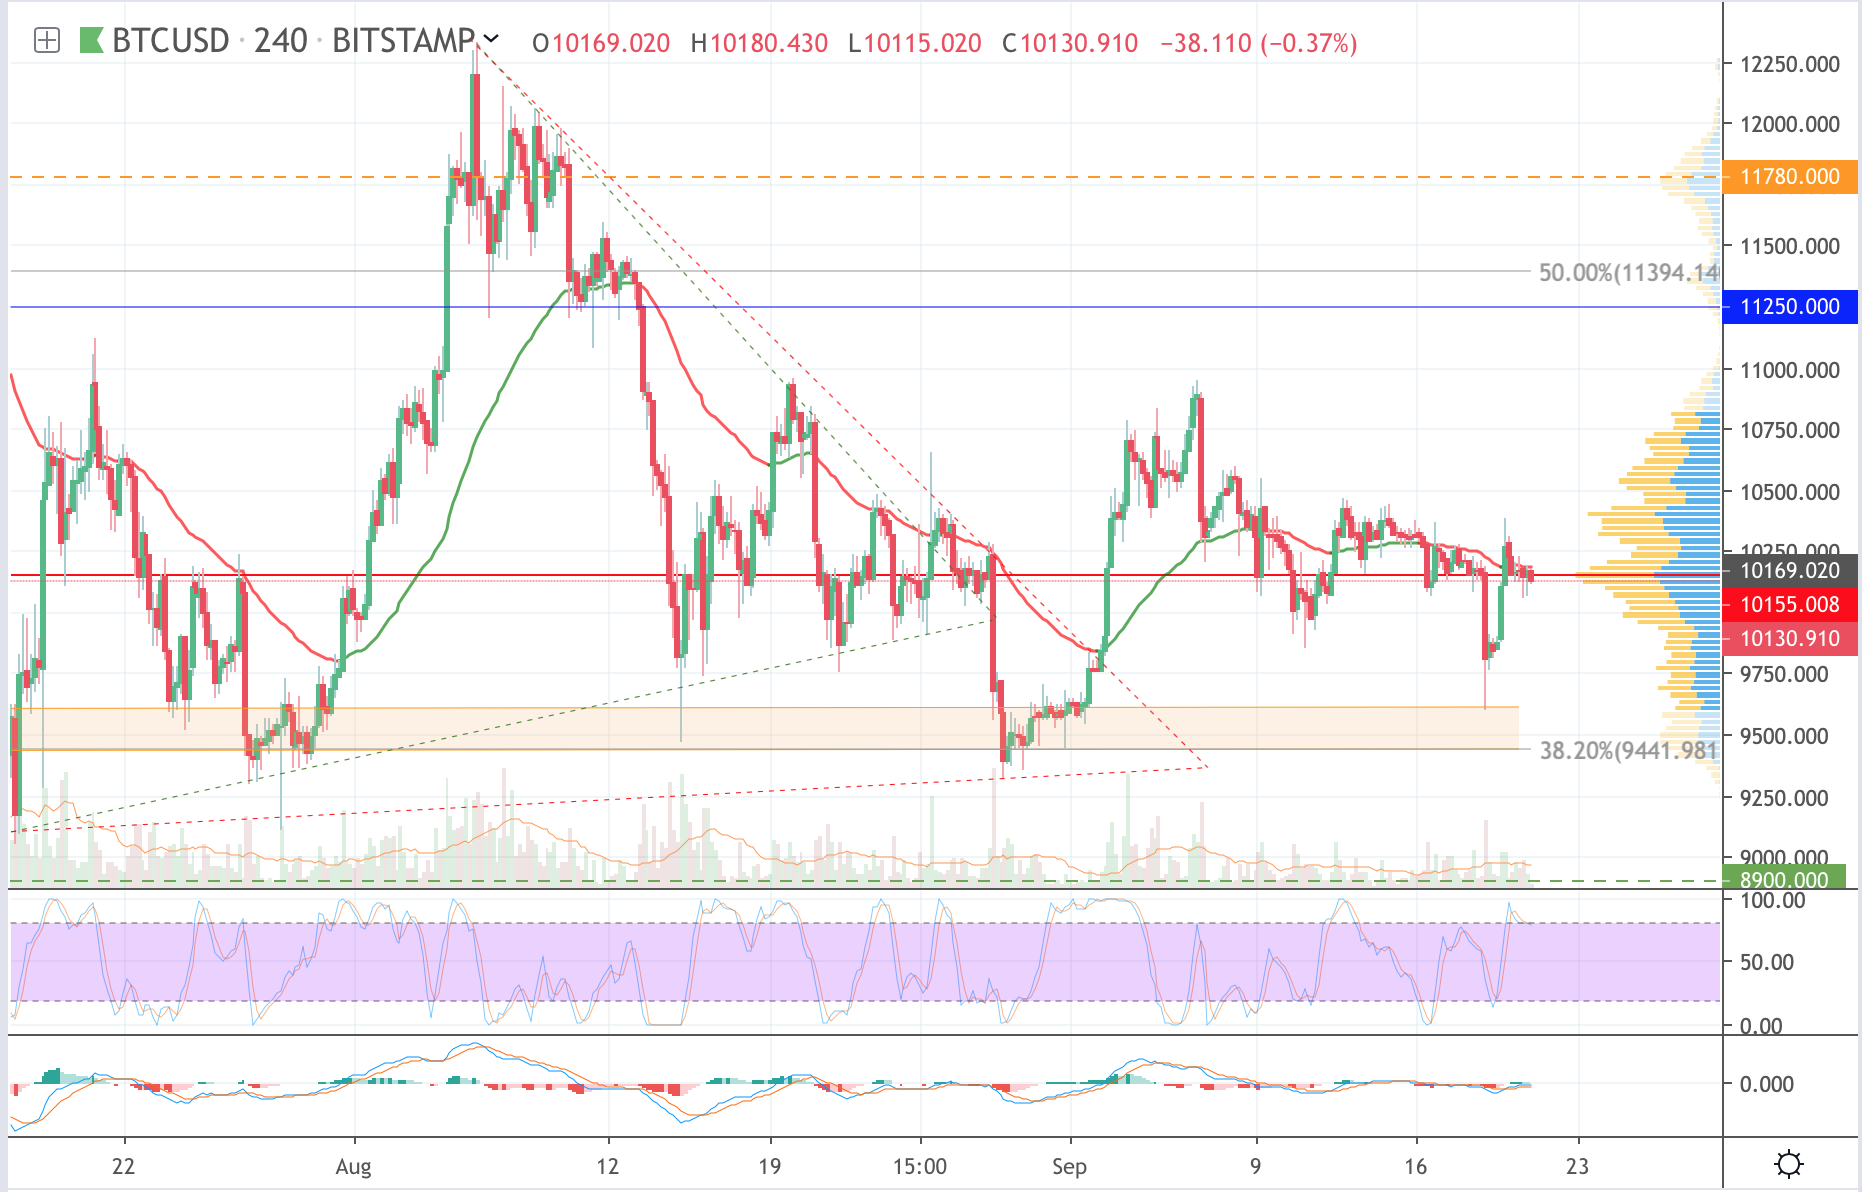 Analysis of cryptocurrency pairs BTC / USD, ETH / USD and XRP / USD on 09/21/2019